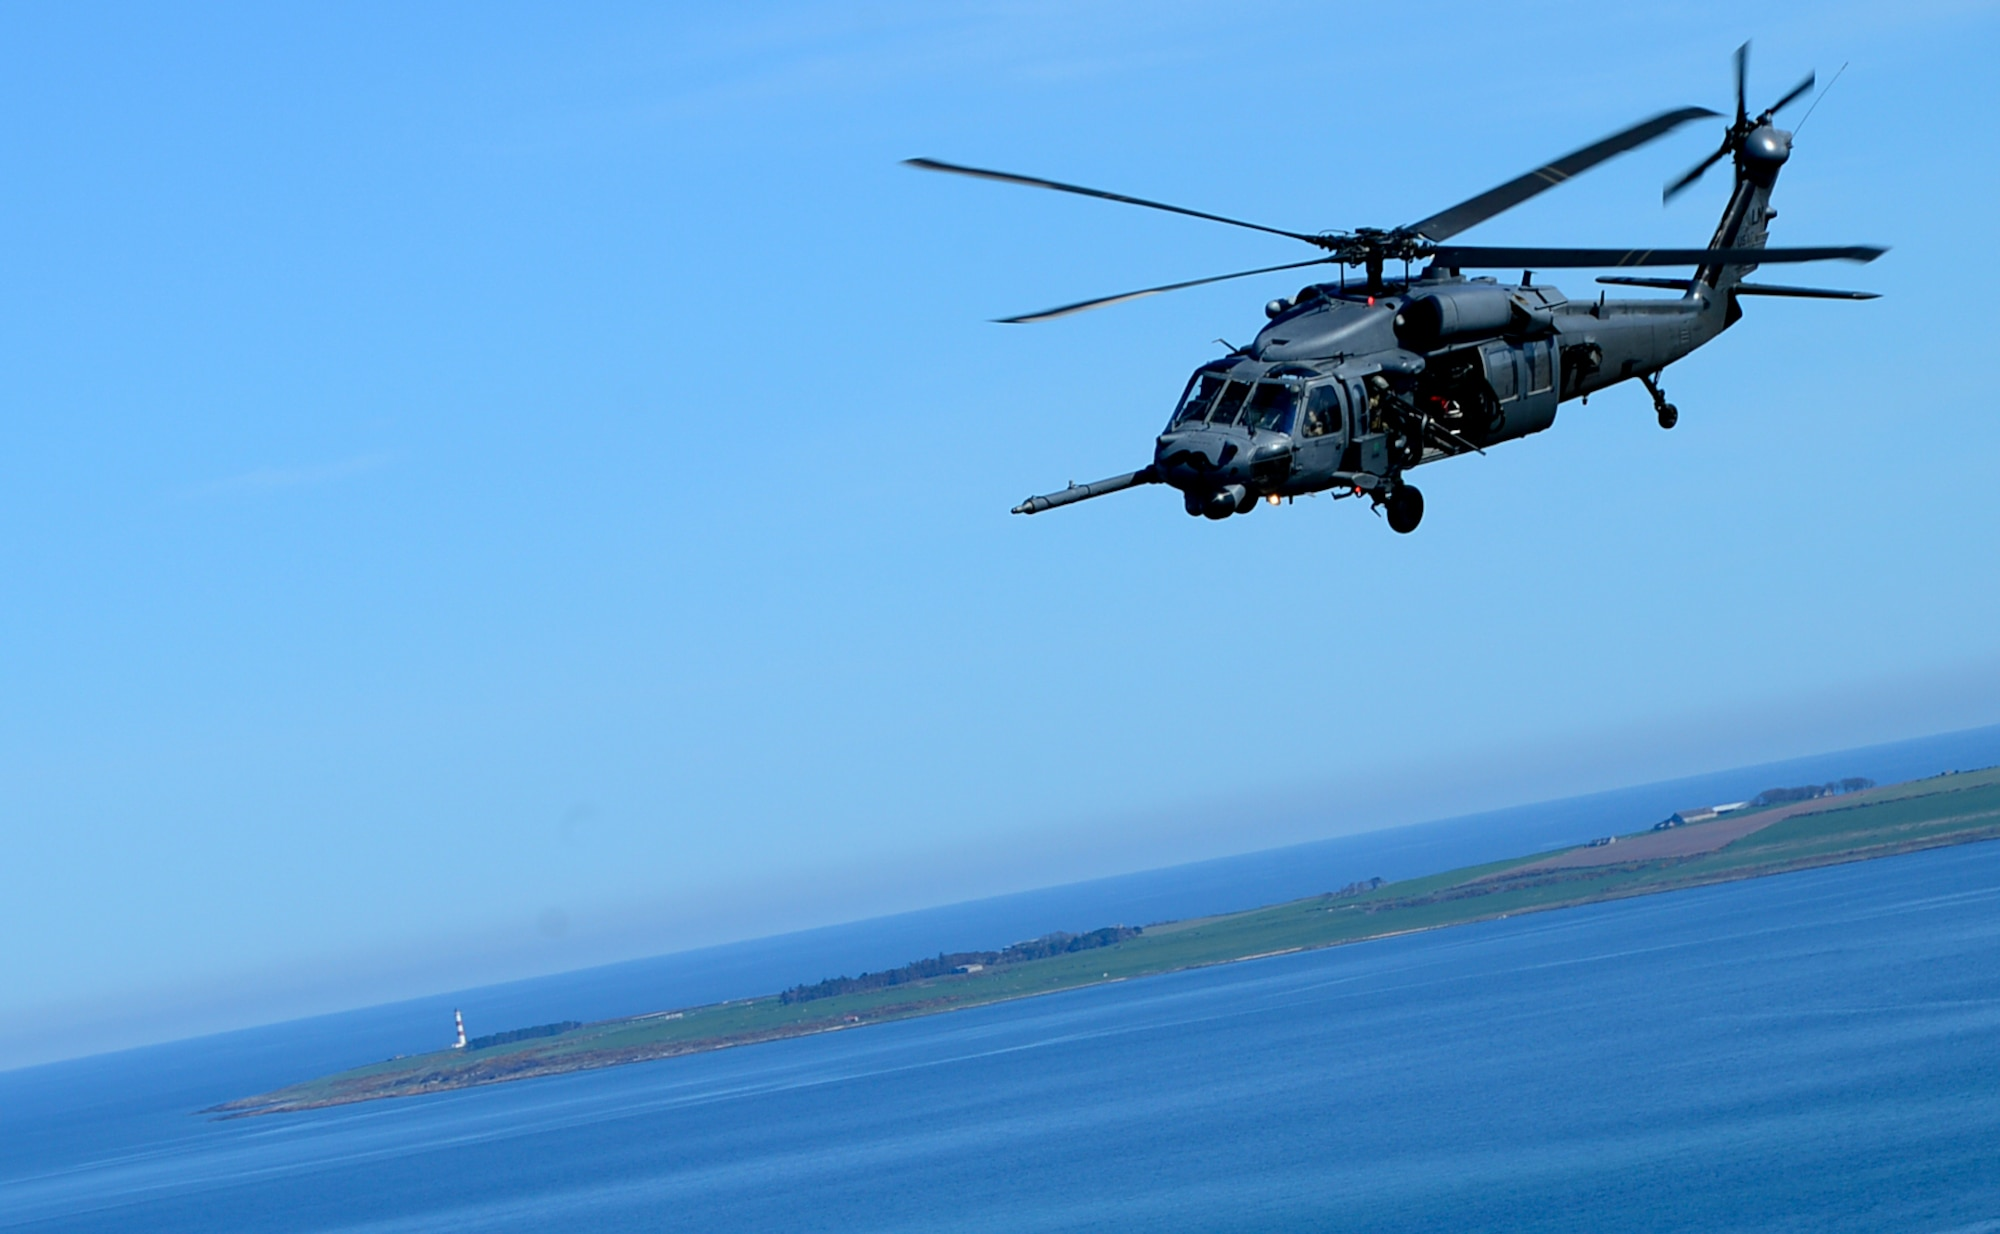 An HH-60G Pave Hawk assigned to Royal Air Force Lakenheath's 56th Rescue Squadron flies over Scotland during exercise Joint Warrior 15-1, April 22, 2015. The Air Force announced Nov. 6 that the 56th and 57th Rescue squadrons from RAF Lakenheath are relocating to Aviano Air Base, Italy, starting in fiscal year 2017. (U.S. Air Force photo/Senior Airman Erin O'Shea)